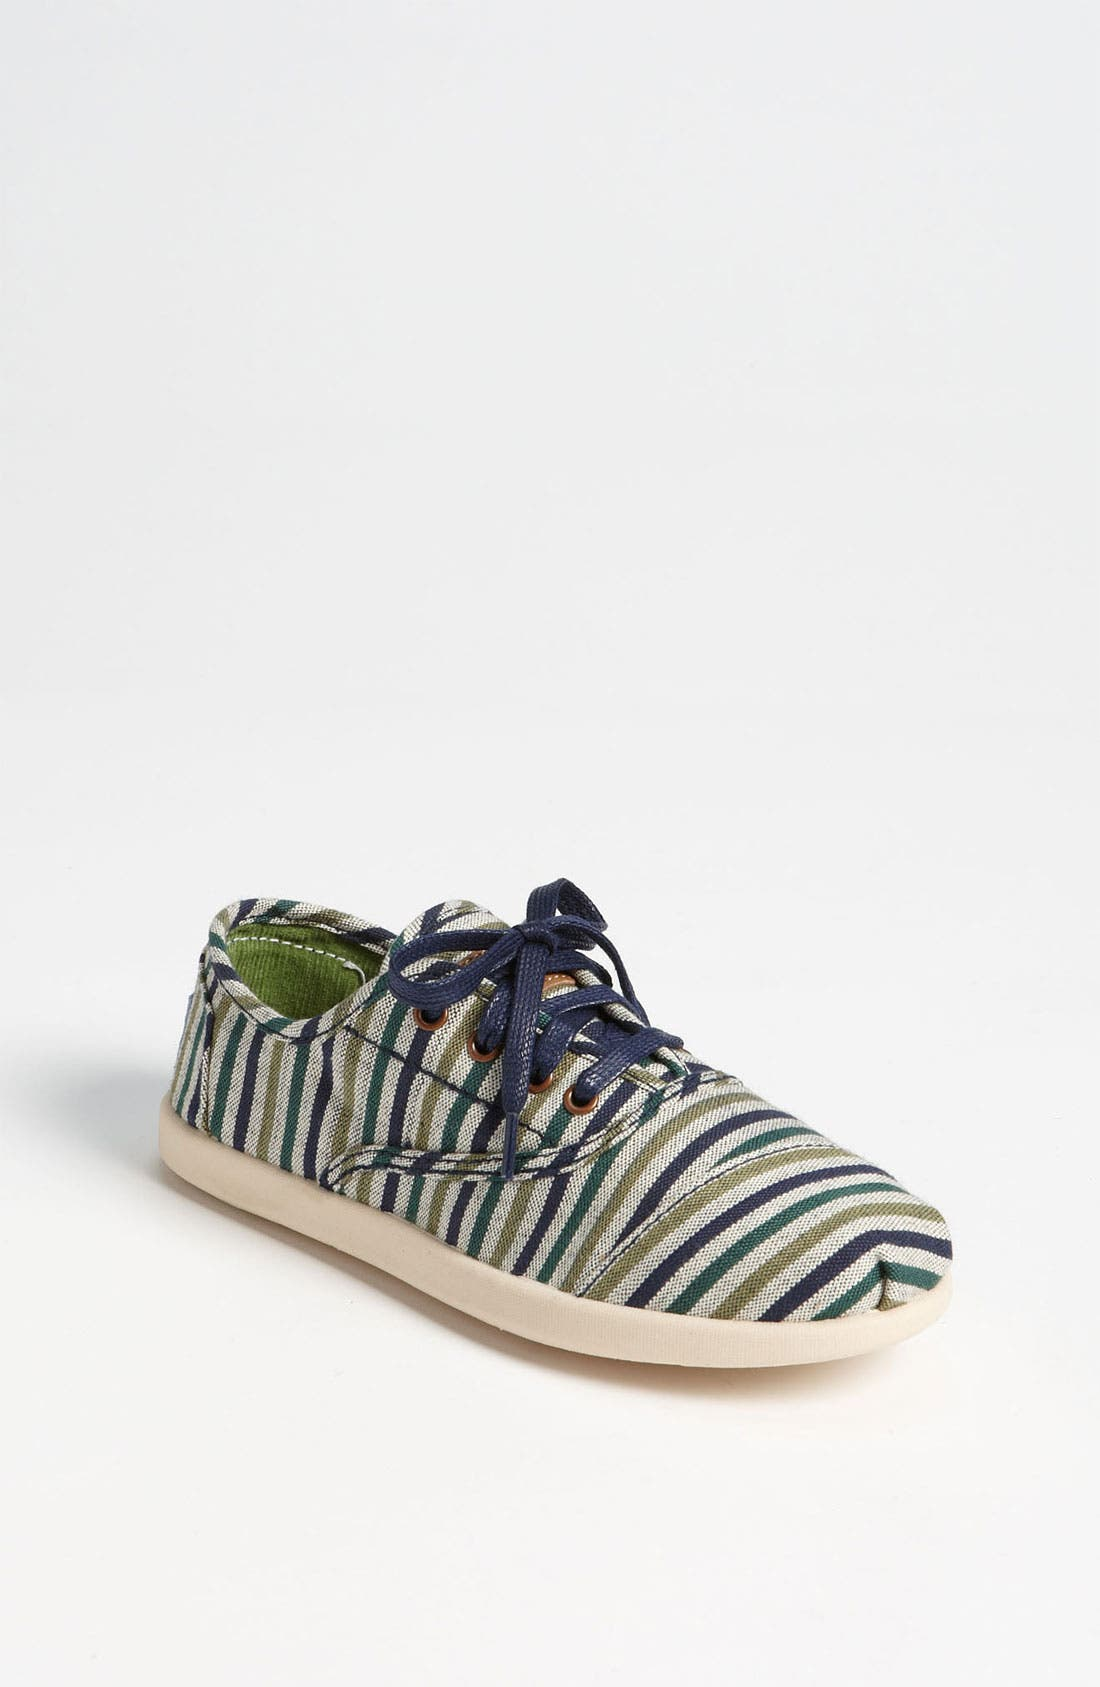 Alternate Image 1 Selected - TOMS 'Cordones Youth - Renato' Slip-On (Toddler, Little Kid & Big Kid)